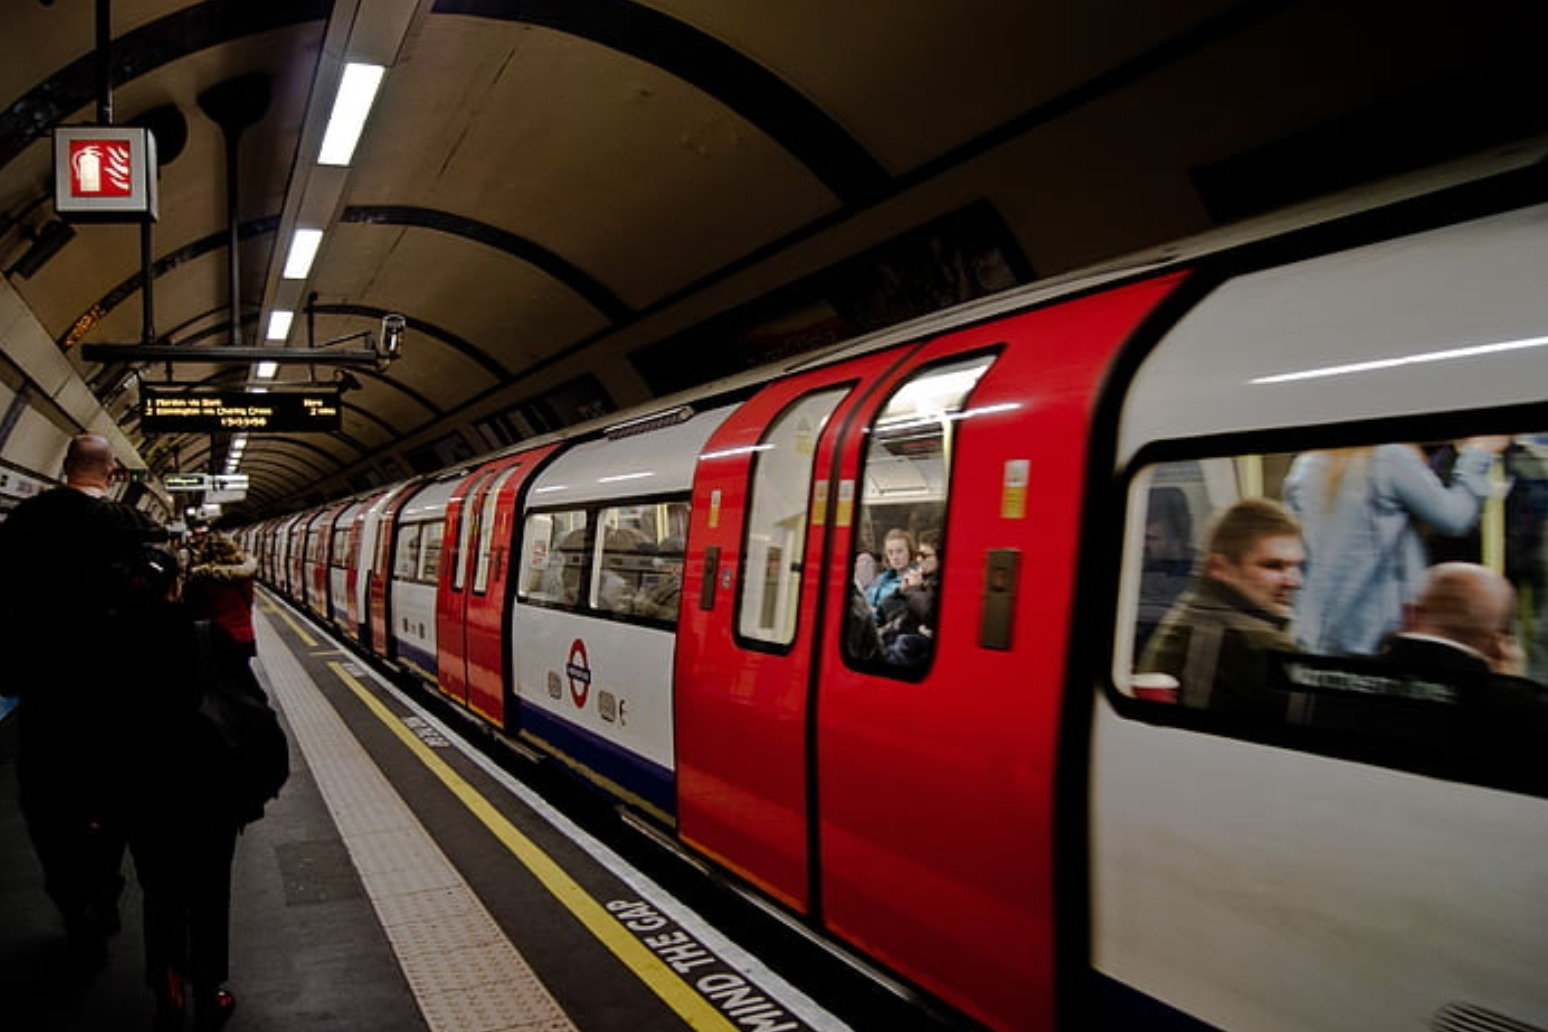 Tube workers to strike on polling day thumbnail